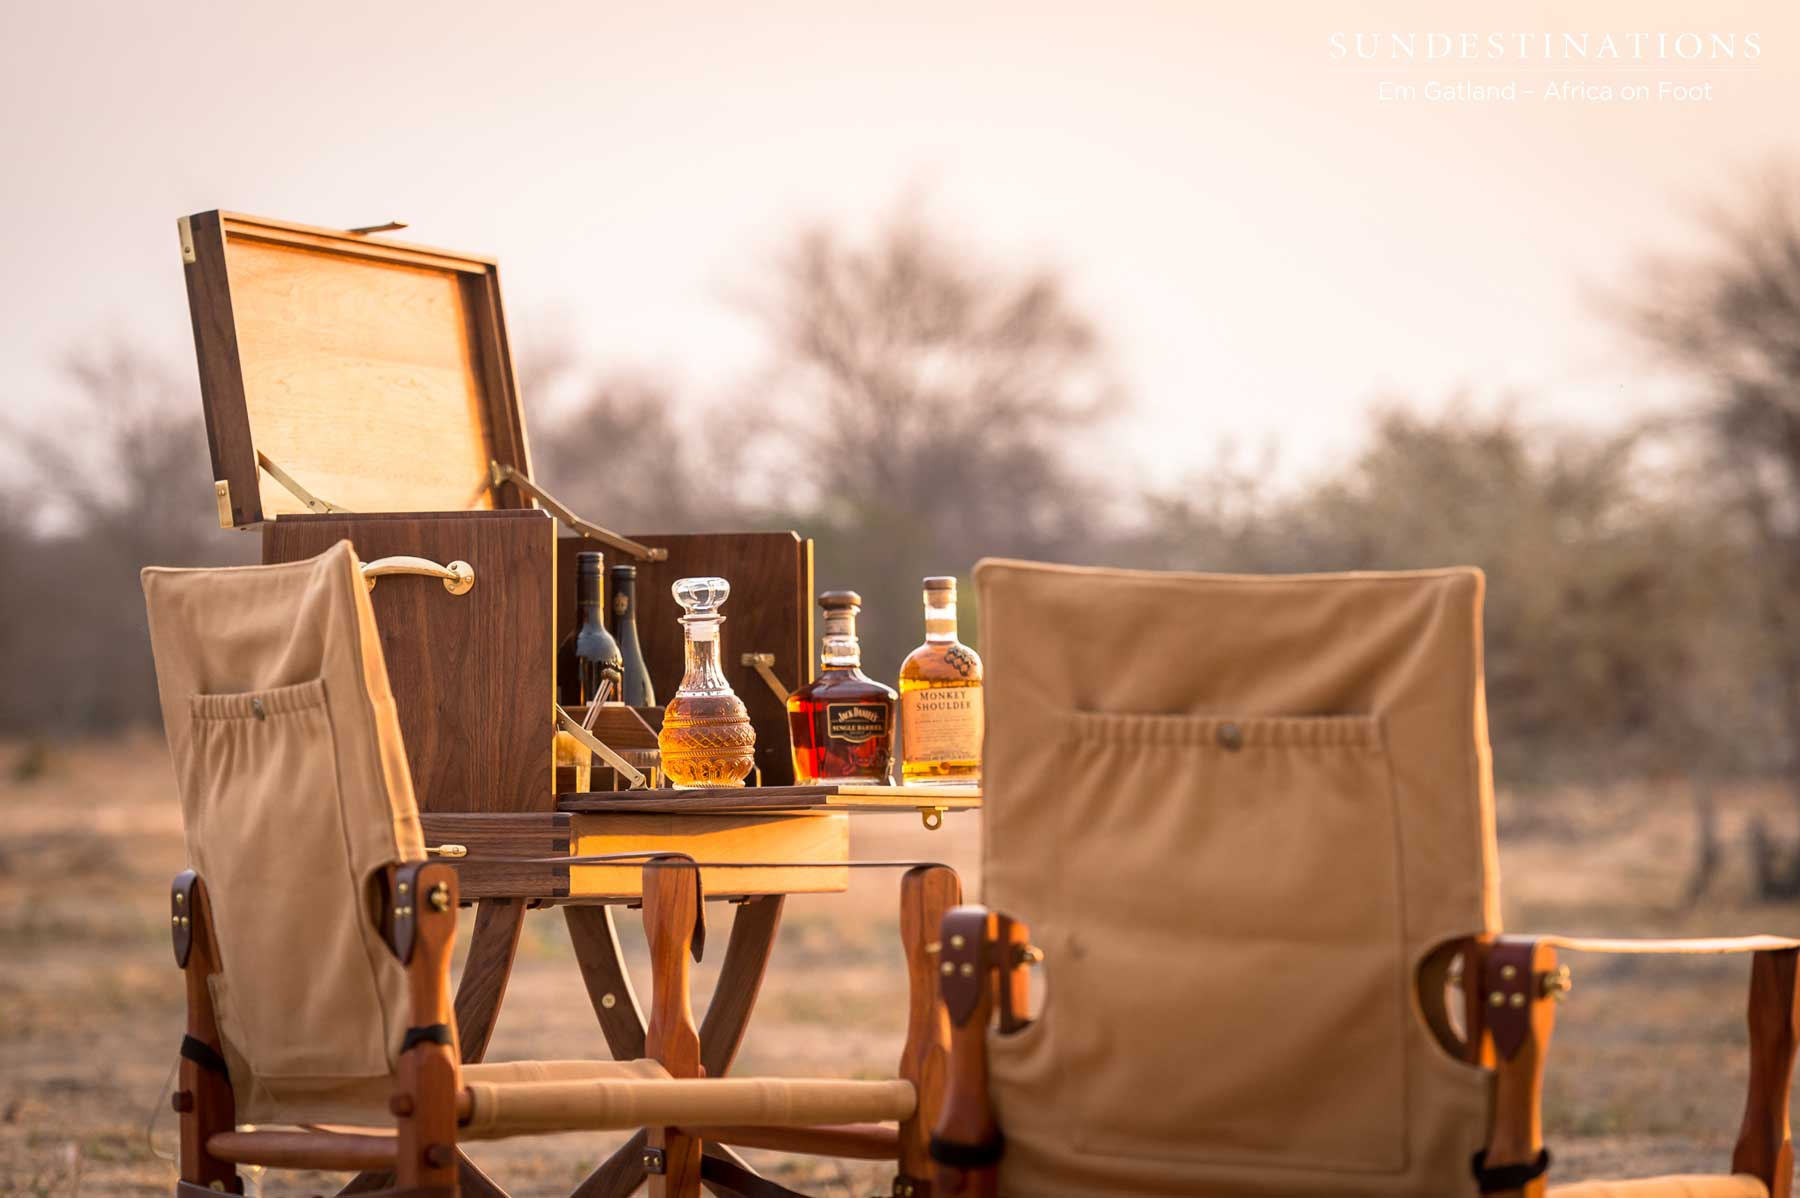 Our Honeymoon Sundowner Experience with a Classic Melvill & Moon Safari Set-up